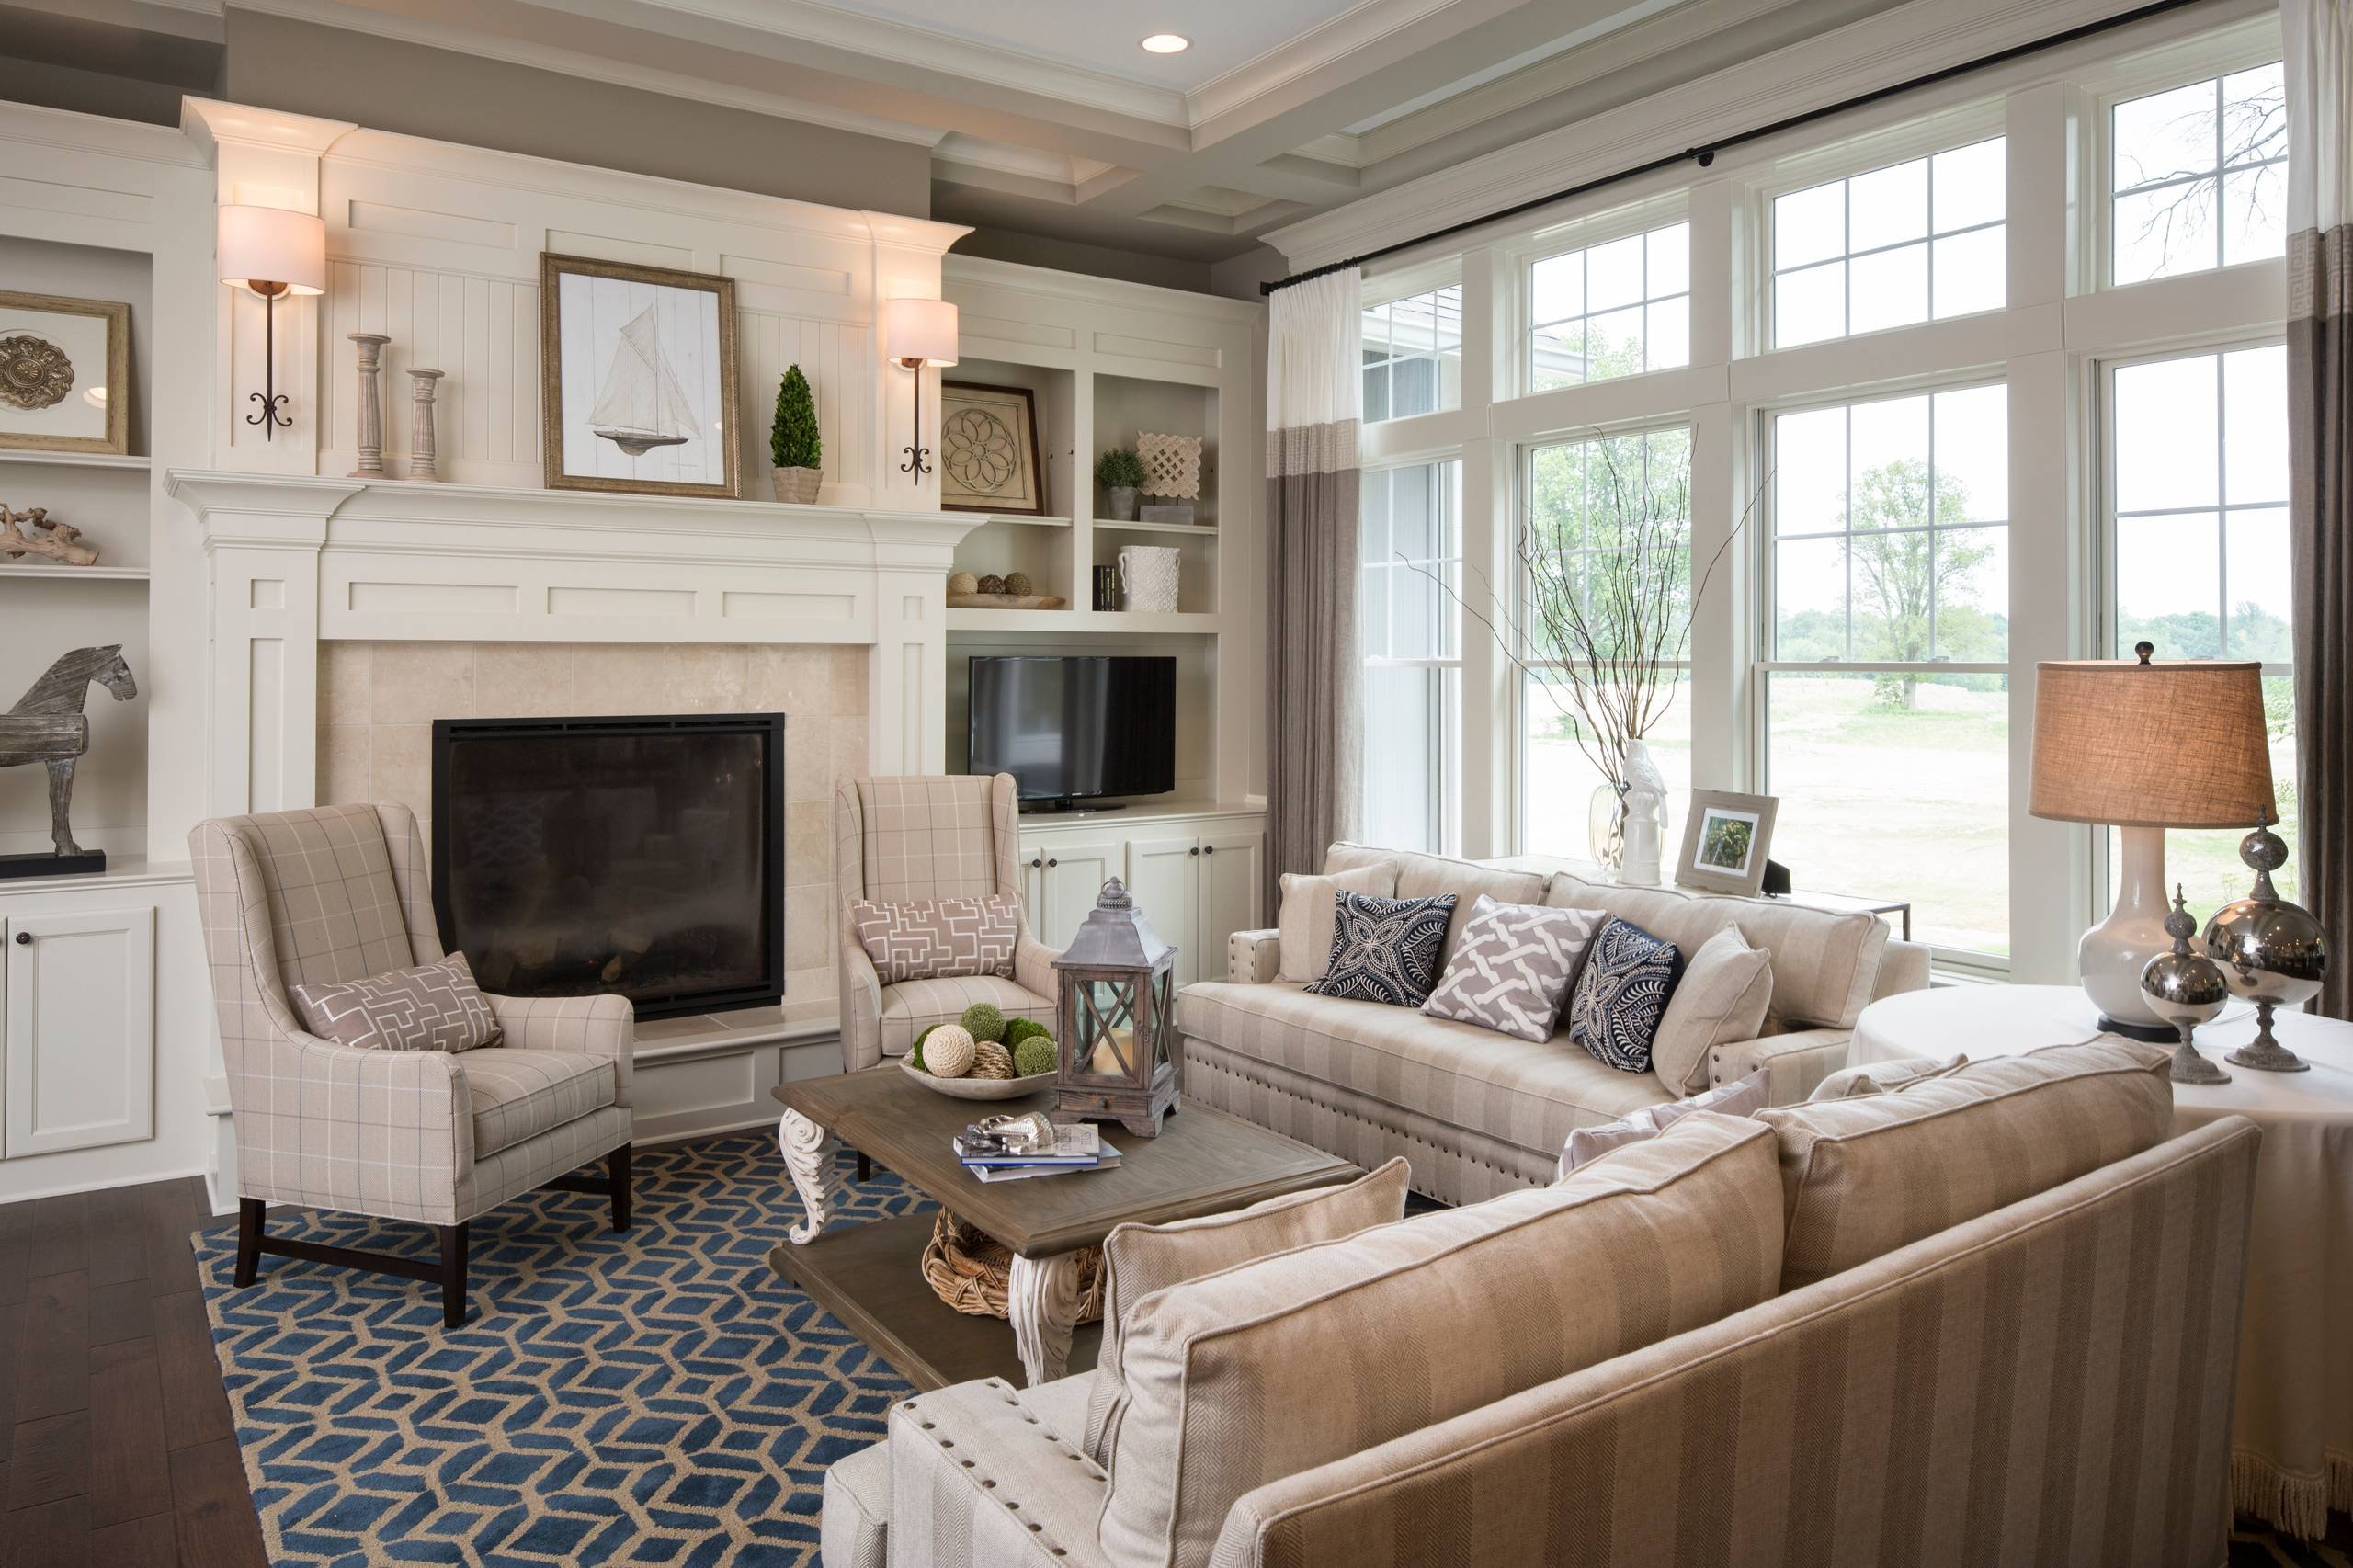 75 Beautiful Traditional Living Room Pictures Ideas December 2020 Houzz